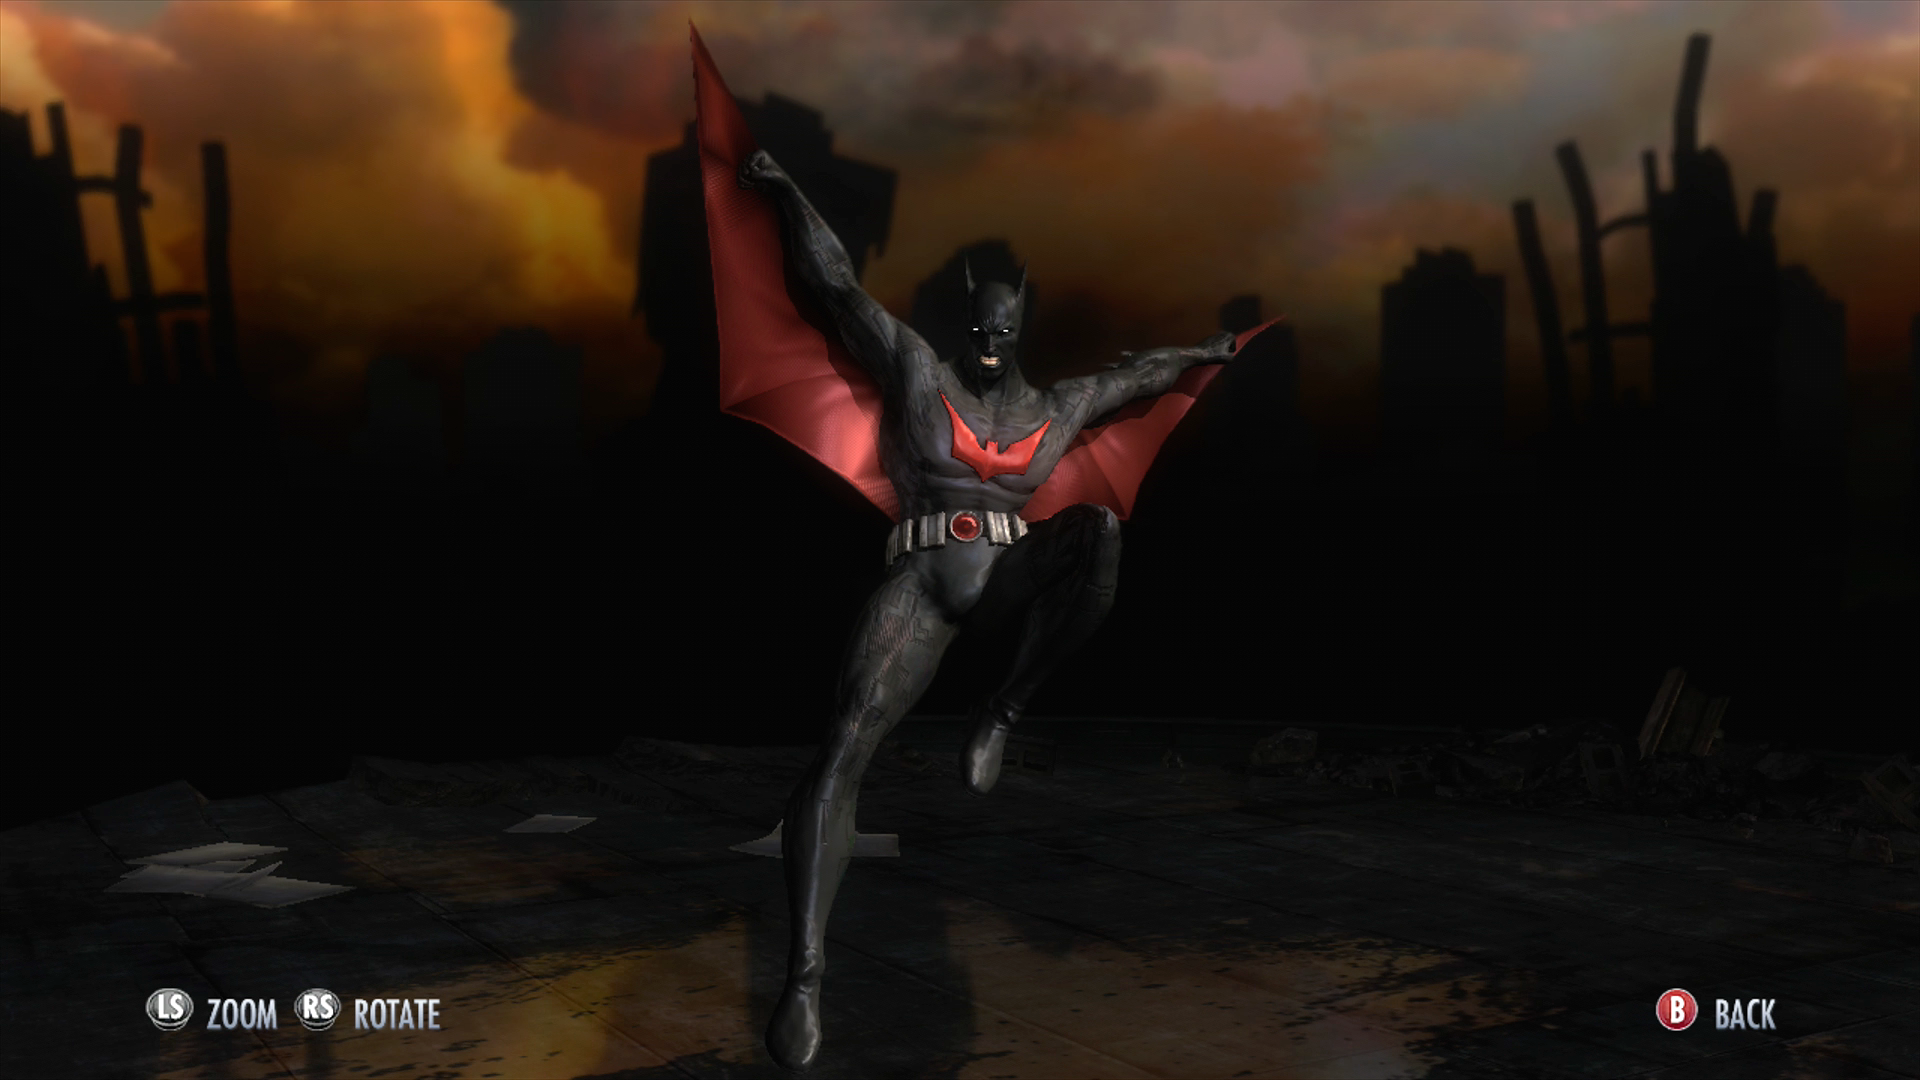 Injustice 1920x1080 - High Definition Pics